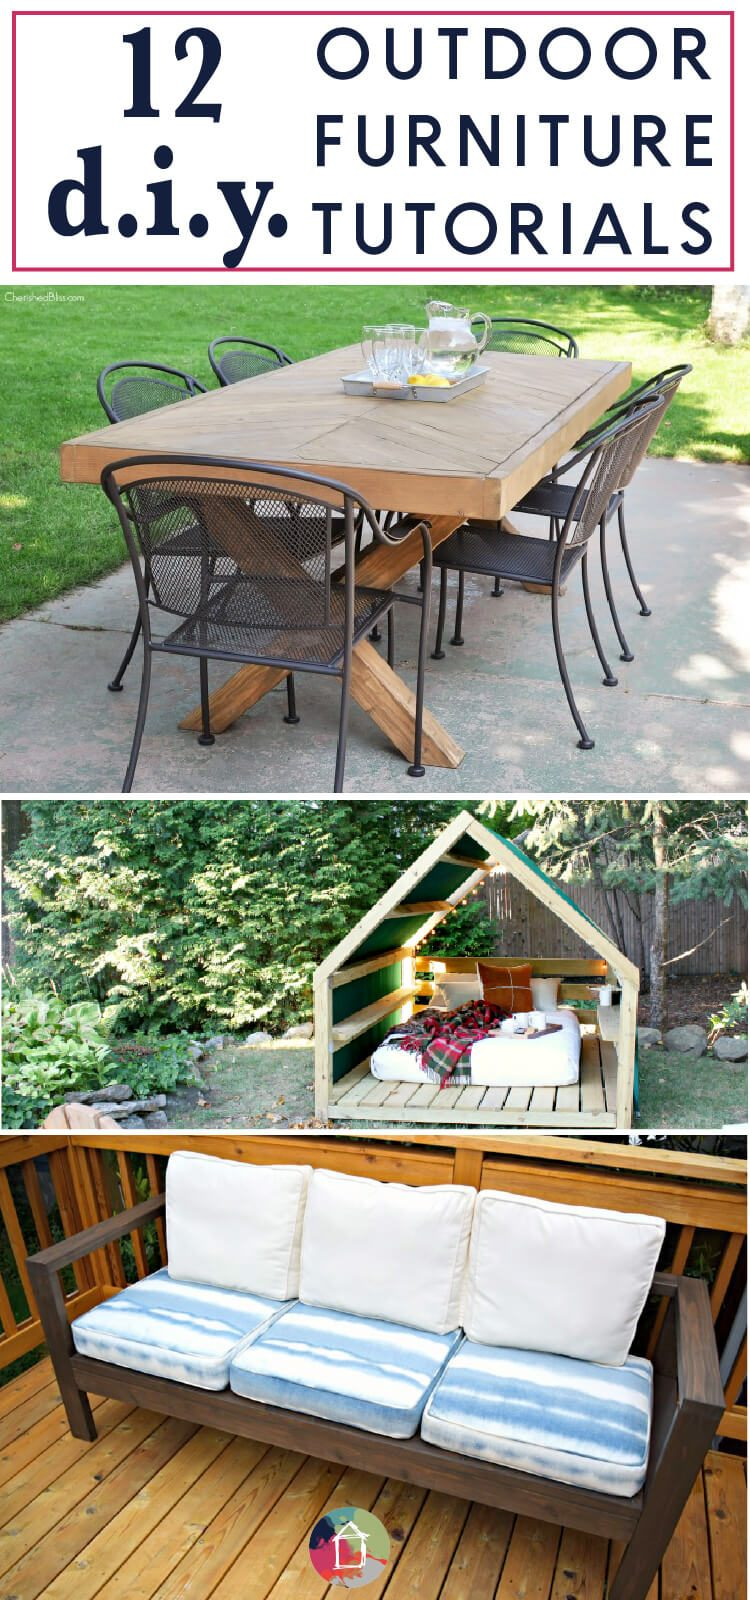 Outdoor Furniture Can Be So Expensive But These DIY Projects Are High On